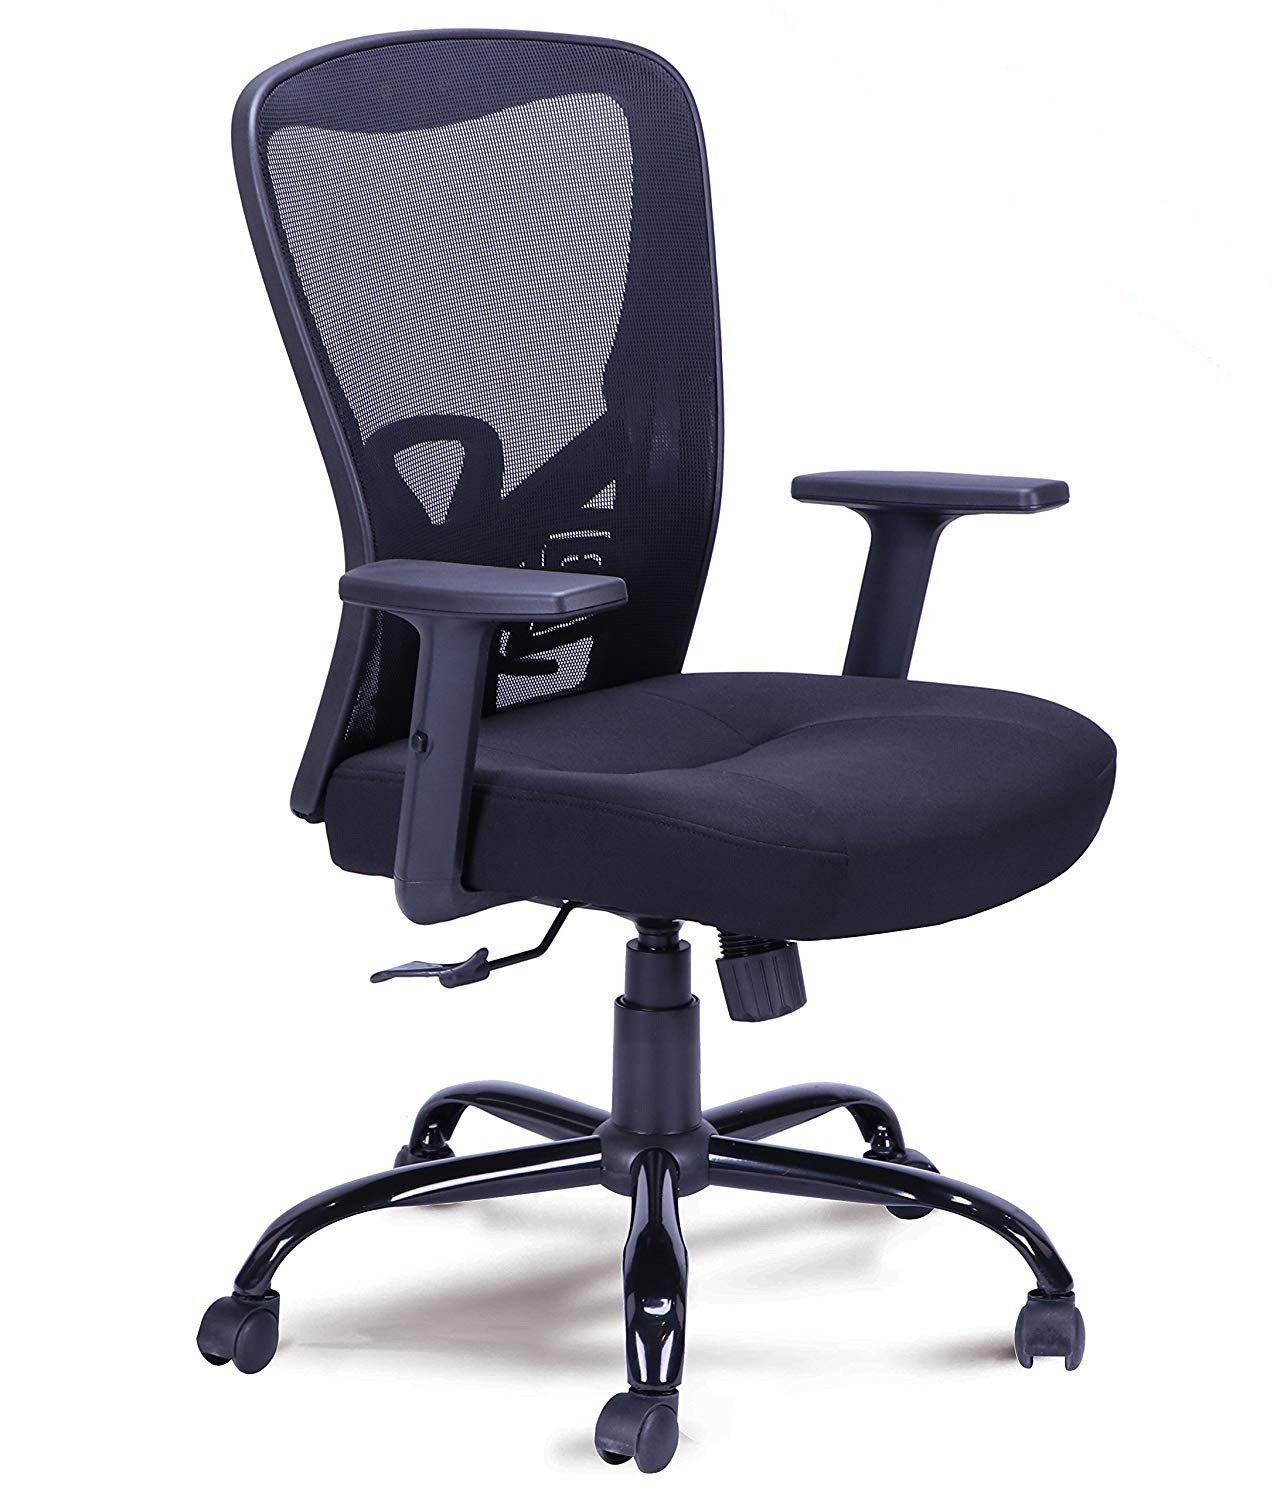 fuhe High Back Mesh Ergonomic Comfortable Swivel Computer Office Desk Chair Task Executive Chair Home Office Conference Room Chair With Adjustable Seat And Armrest